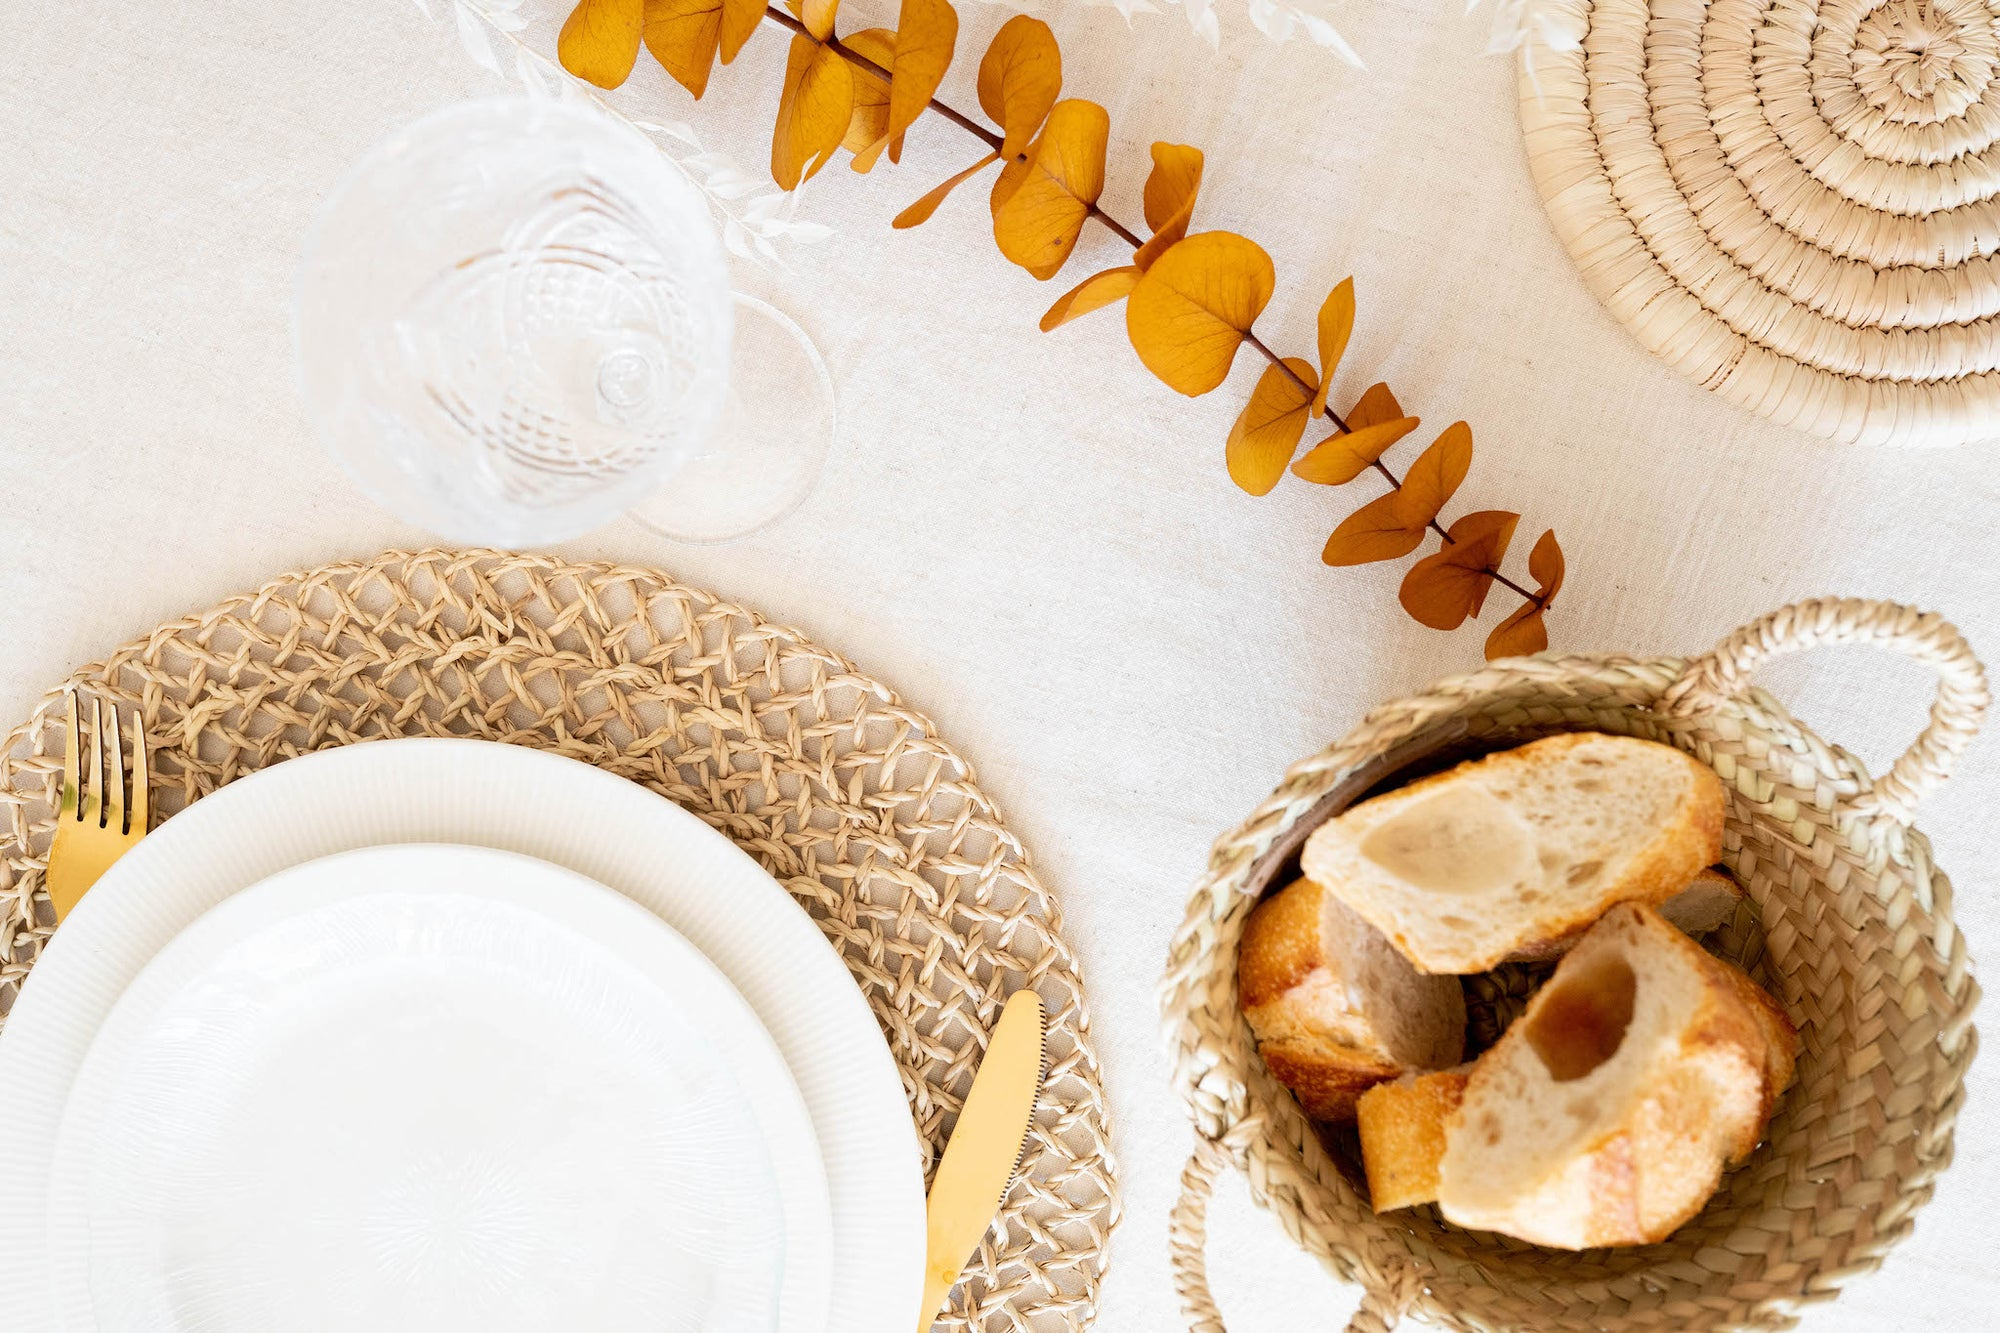 5 ESSENTIALS FOR SETTING YOUR THANKSGIVING TABLE